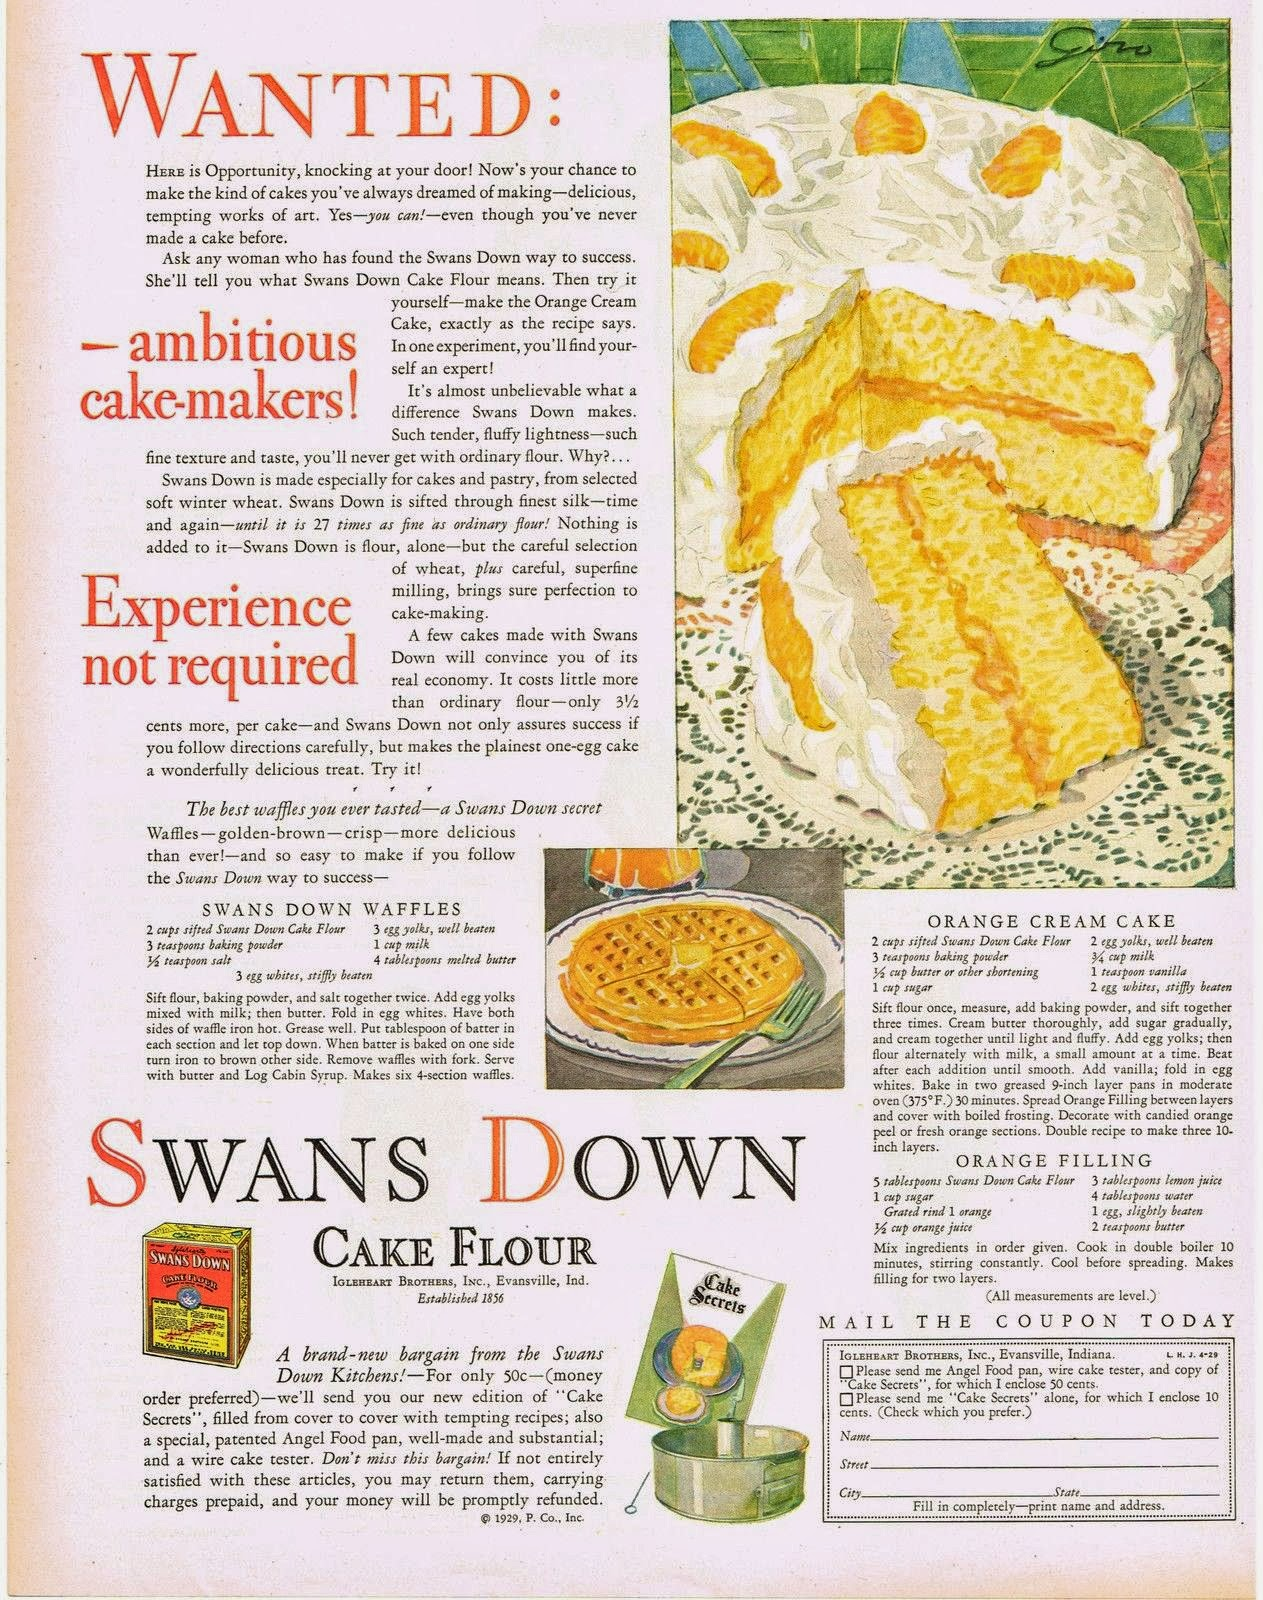 Pancake Recipe With Swans Down Cake Flour